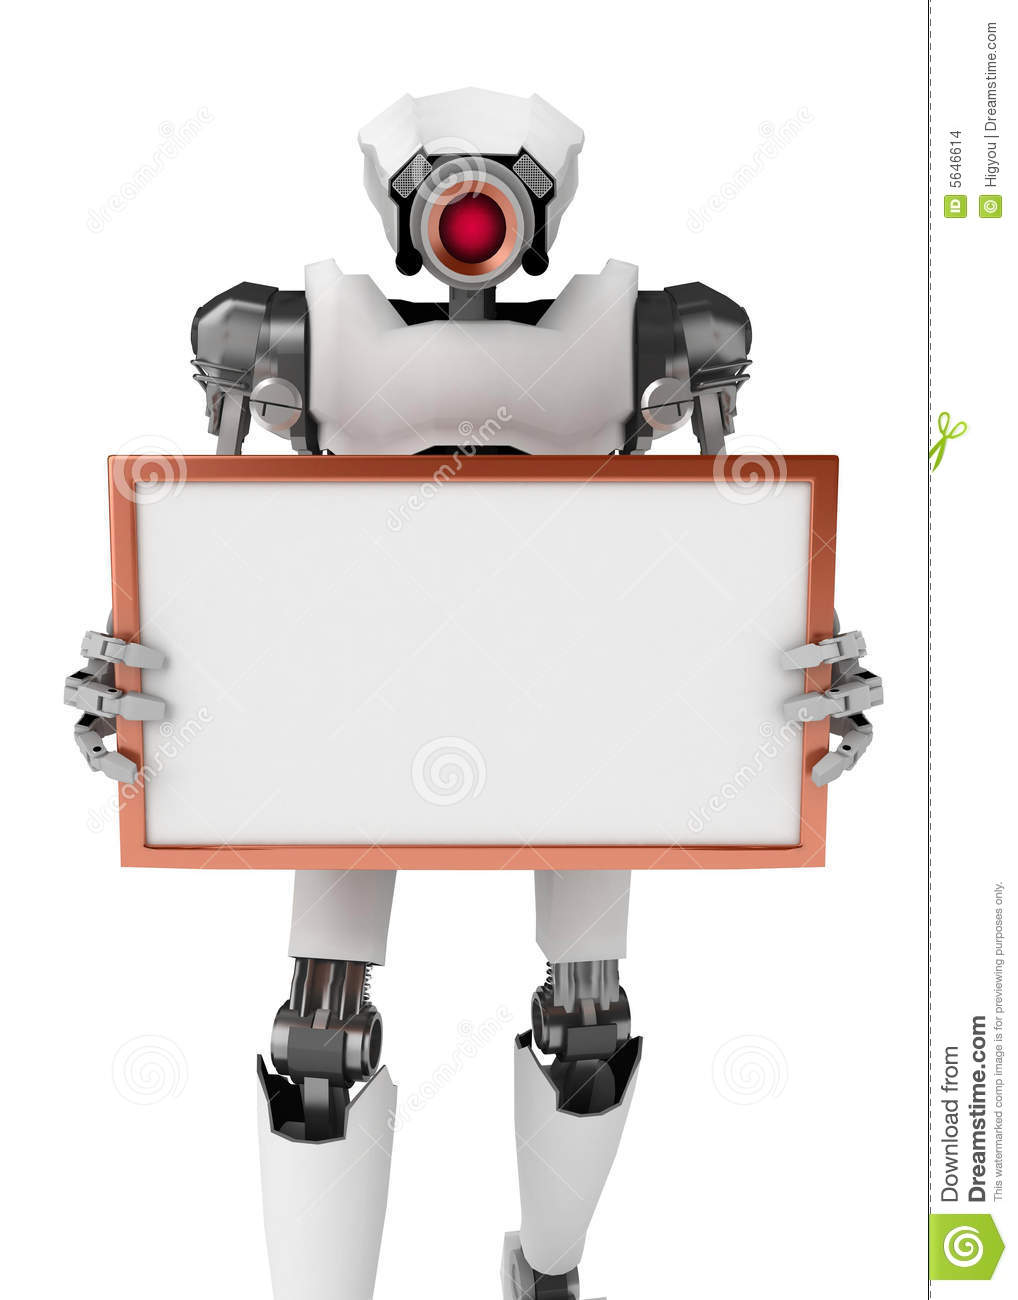 Robot, Holding a Sign